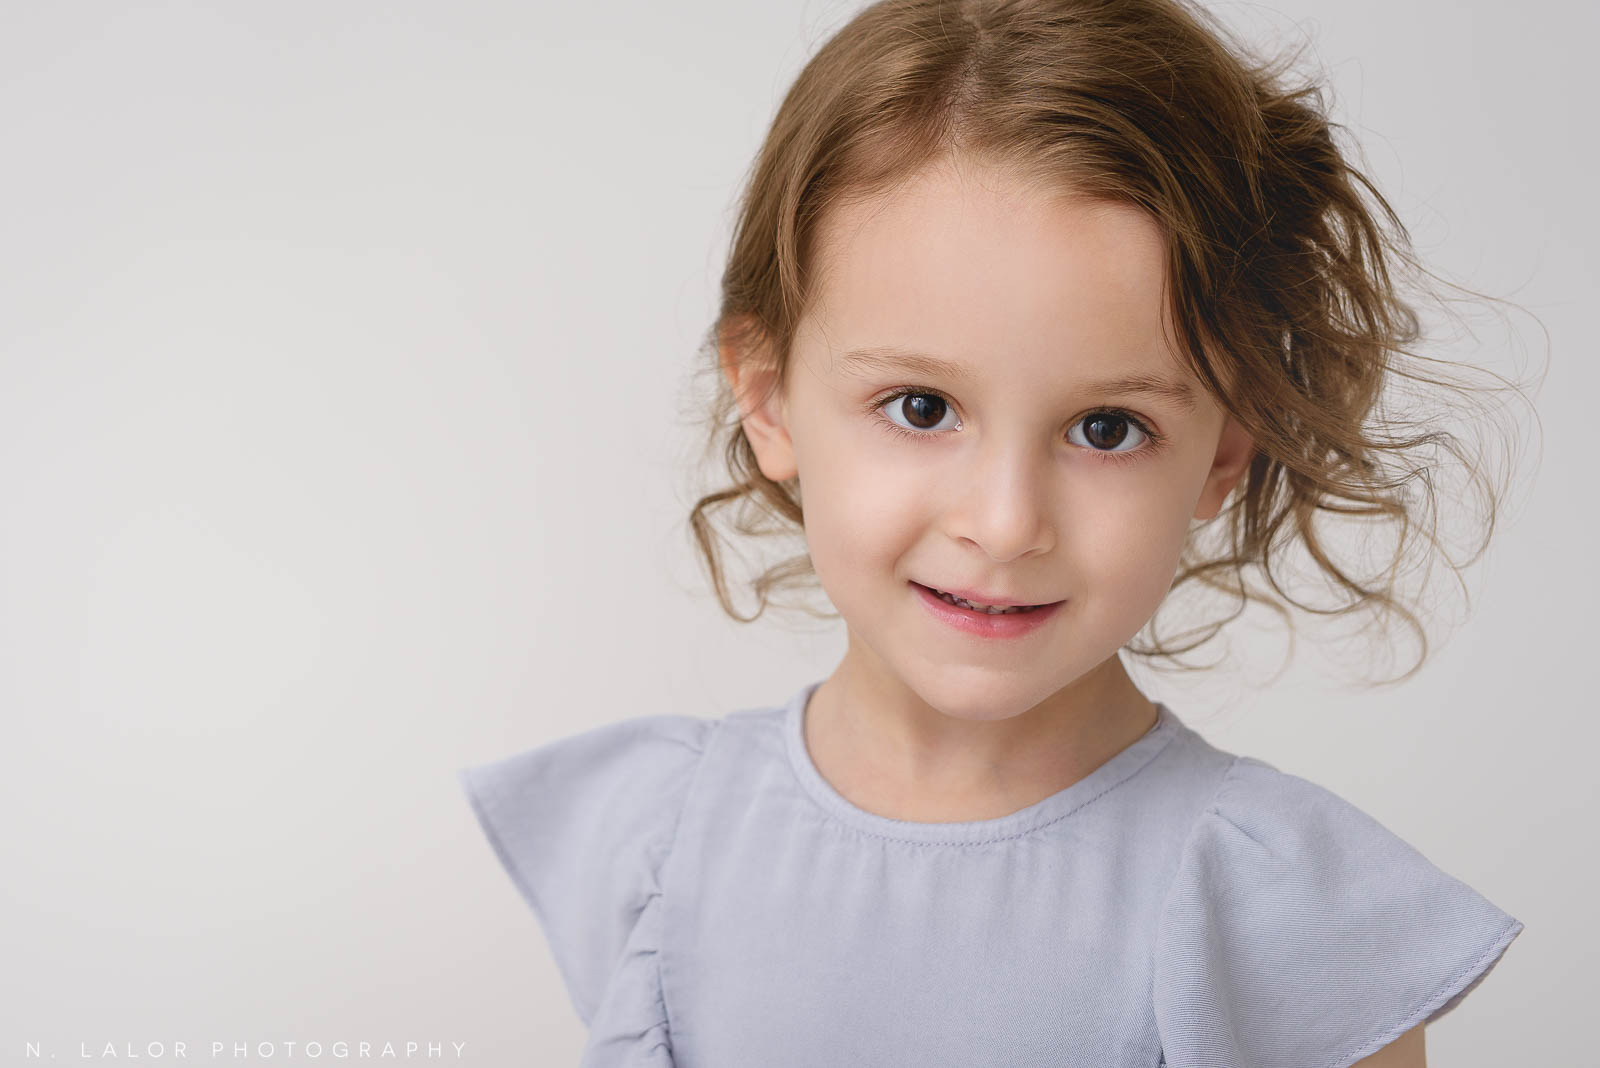 Image of a girl looking at the camera. Studio child portrait by N. Lalor Photography in Greenwich Connecticut.